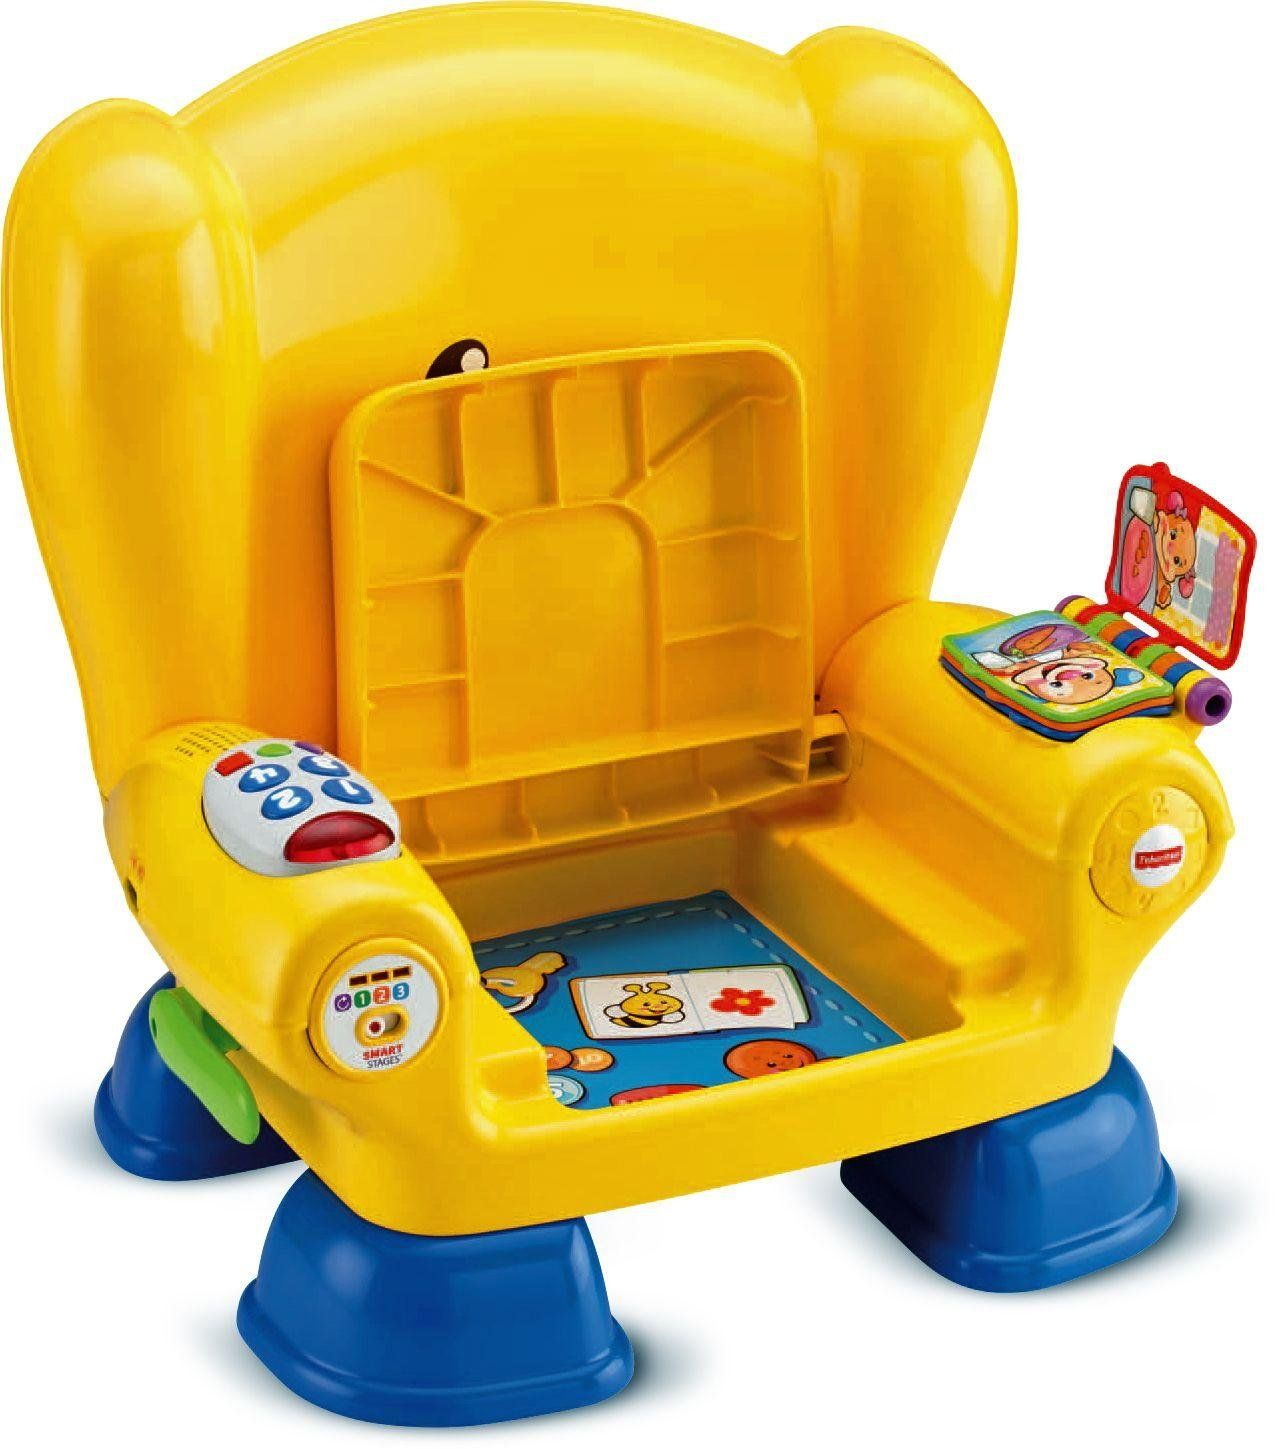 Fisherprice laugh learn smart stages chair in 2020